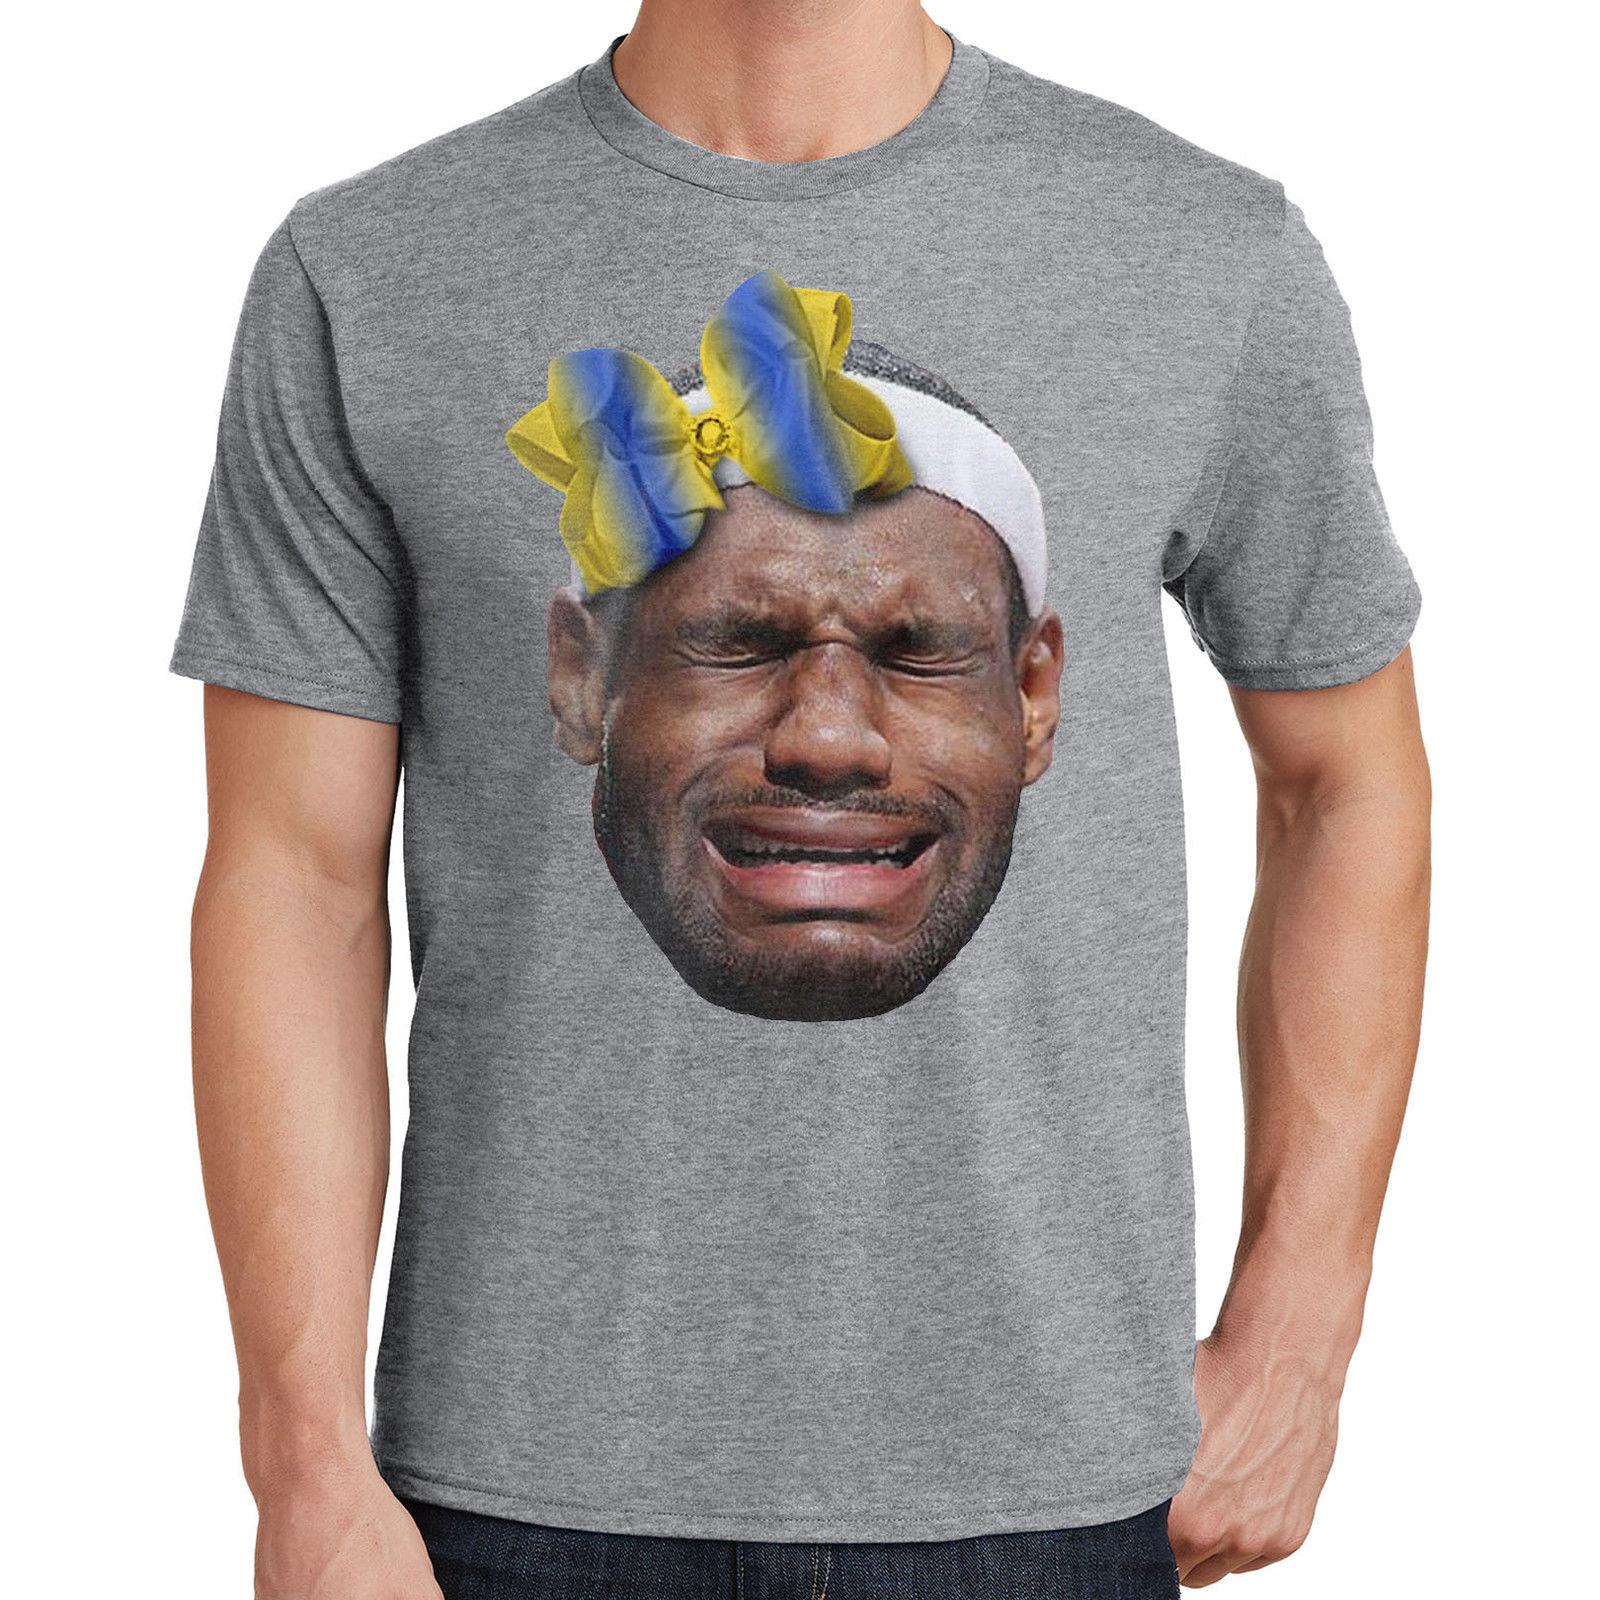 fd6cb934f7ef Lebron James T Shirt Crying Lebron Wearing A Warriors Bow 2073 Funny Unisex  Casual Original T Shirts T Shirts With Sayings From Afterlightclothing